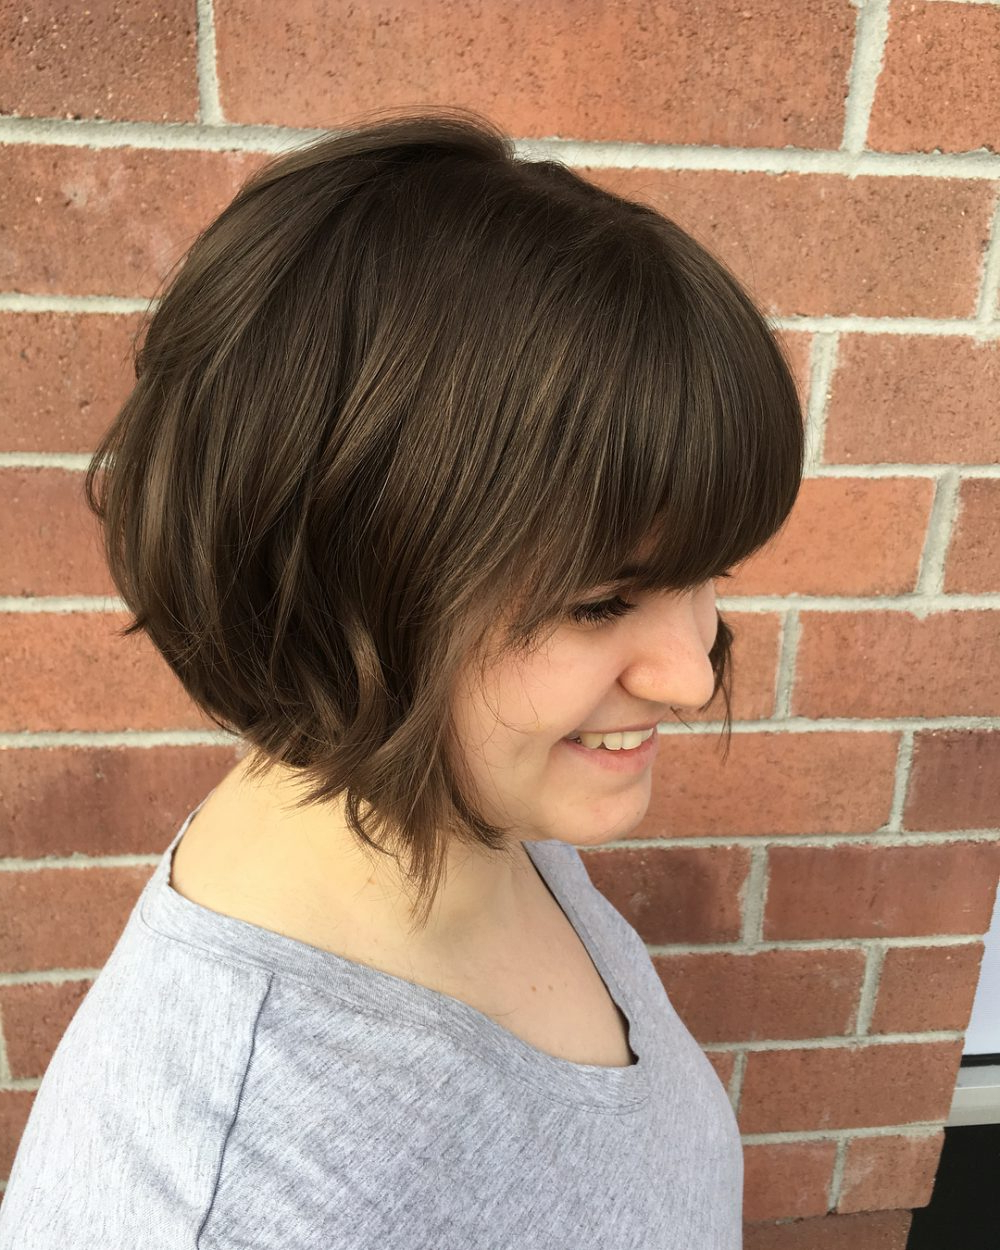 34 Greatest Short Haircuts And Hairstyles For Thick Hair For 2018 Intended For Bob Hairstyles For Thick Hair (View 8 of 20)